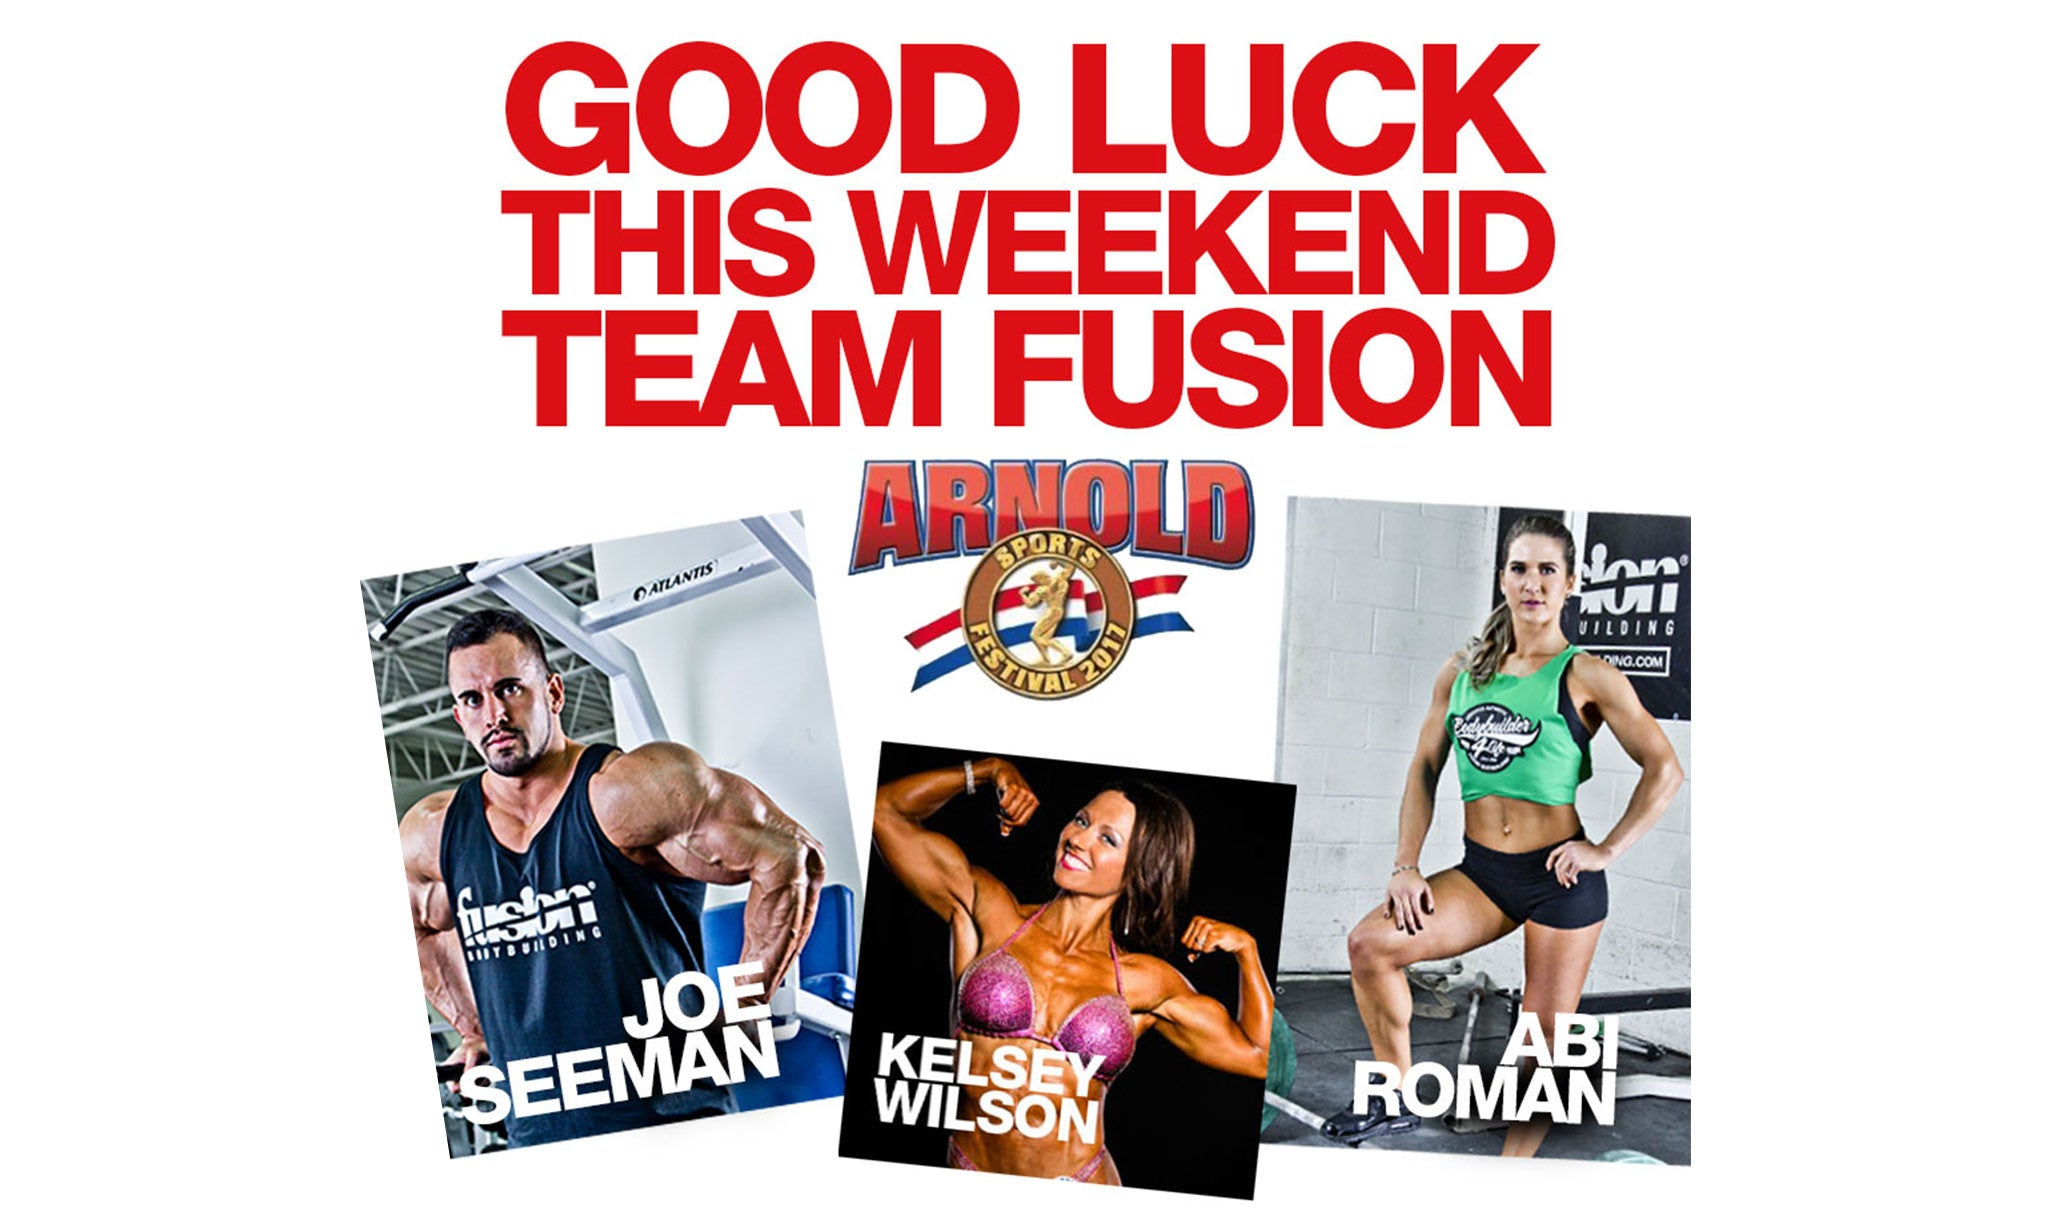 GOOD LUCK TEAM FUSION!